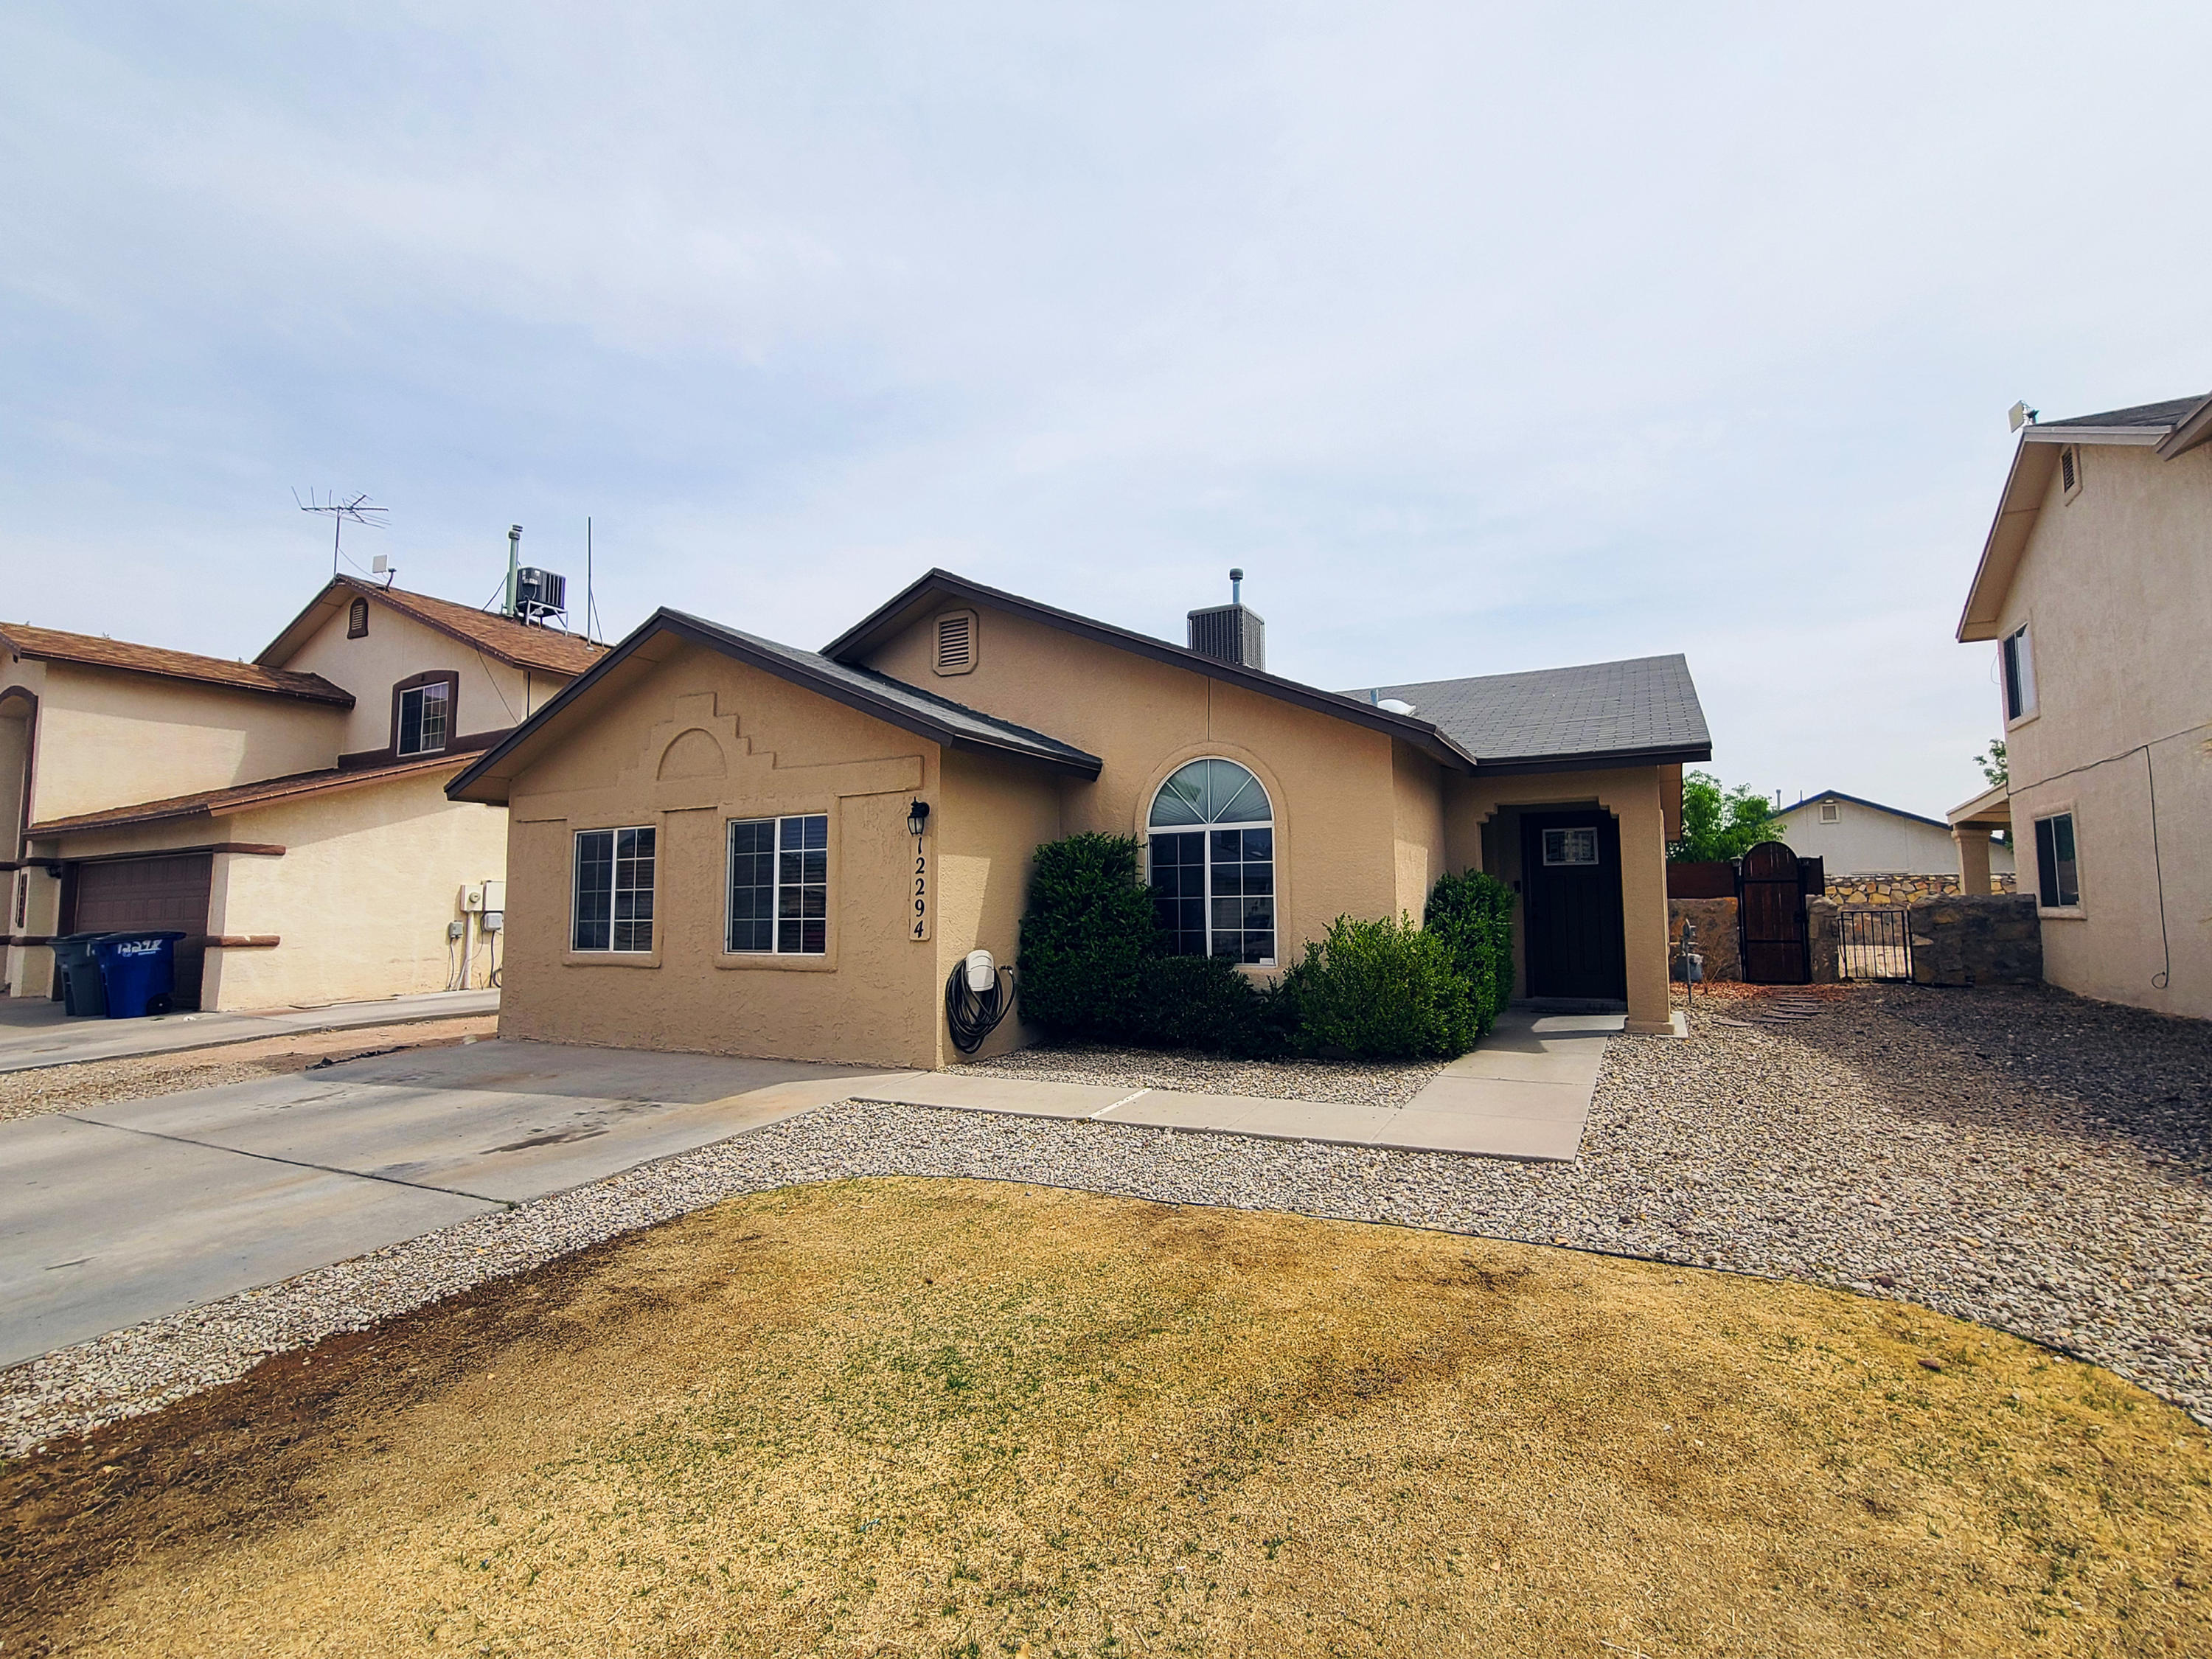 12294 TIERRA BRISA, El Paso, Texas 79938, 4 Bedrooms Bedrooms, ,2 BathroomsBathrooms,Residential,For sale,TIERRA BRISA,844279